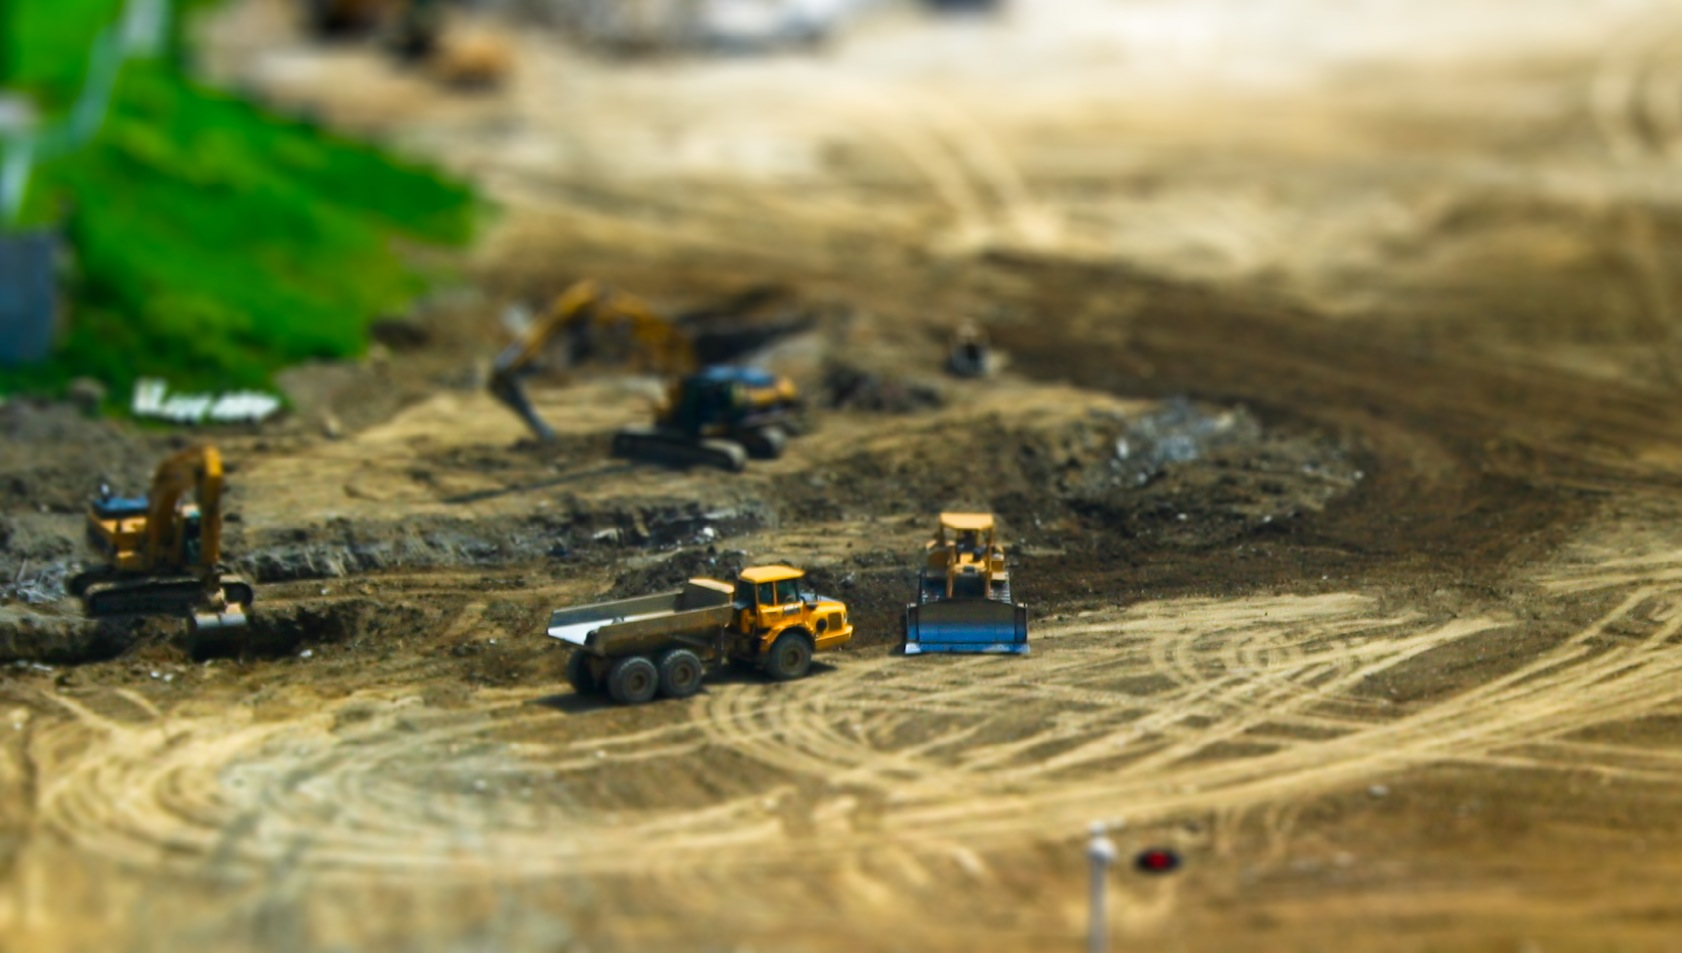 Tilt Shift Construction Shot from the Duke Energy building in Cincinnati, OH. Subject is the parking lot construction site next to the Reds Stadium